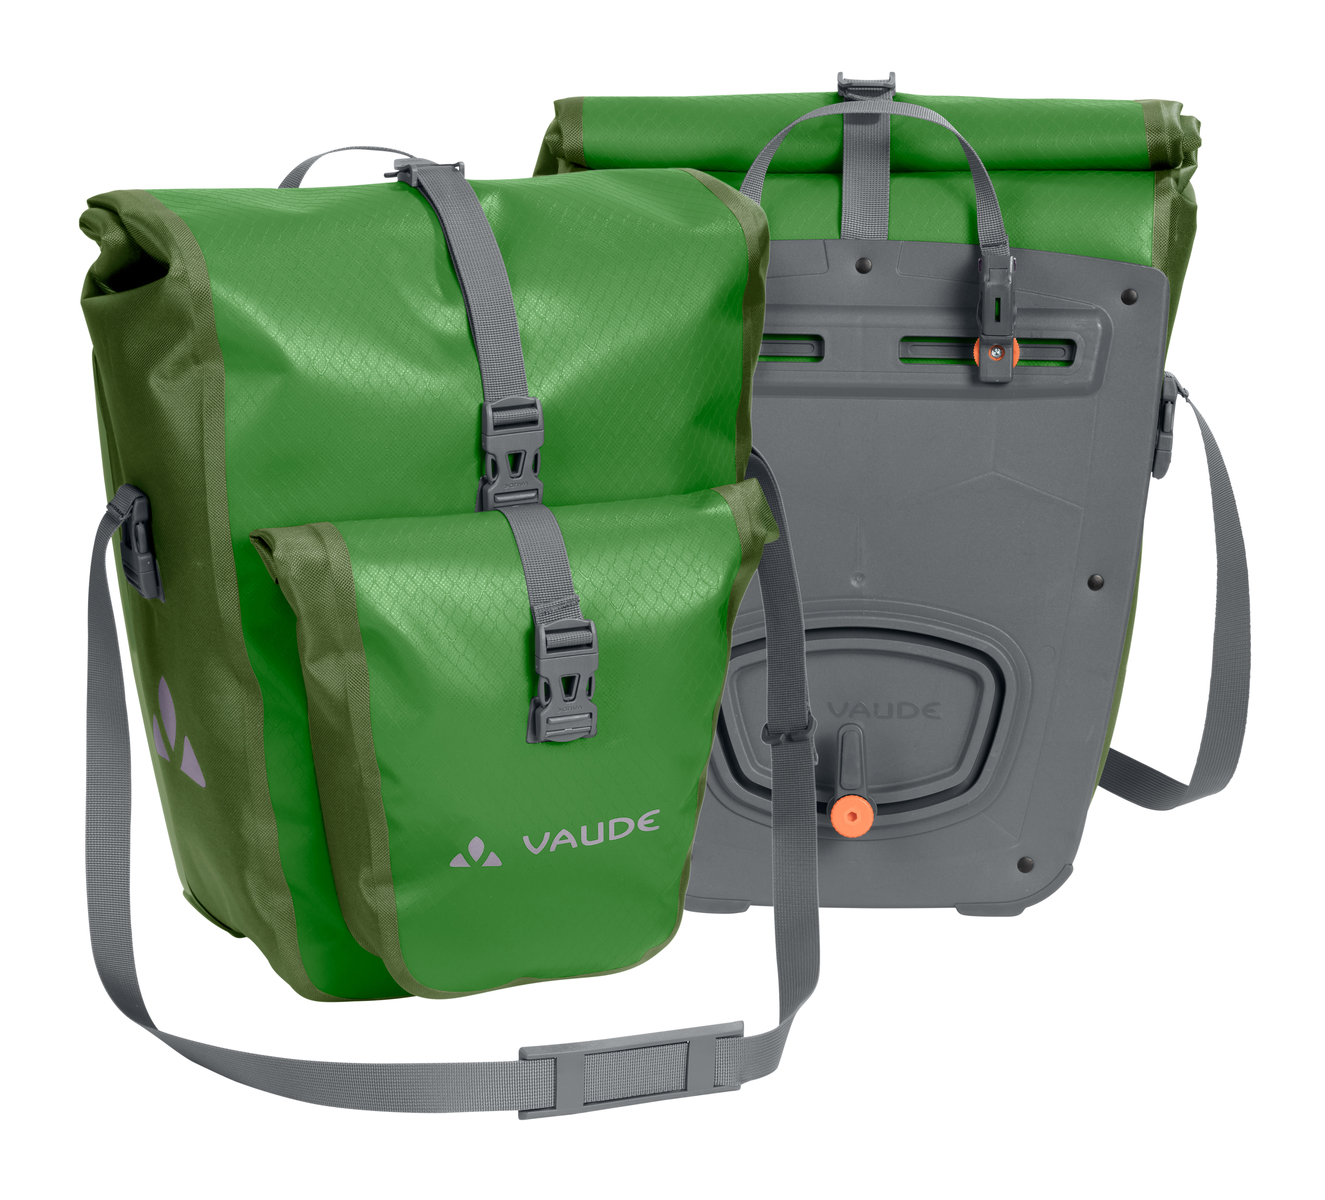 VAUDE Aqua Back Plus parrot green  - VAUDE Aqua Back Plus parrot green